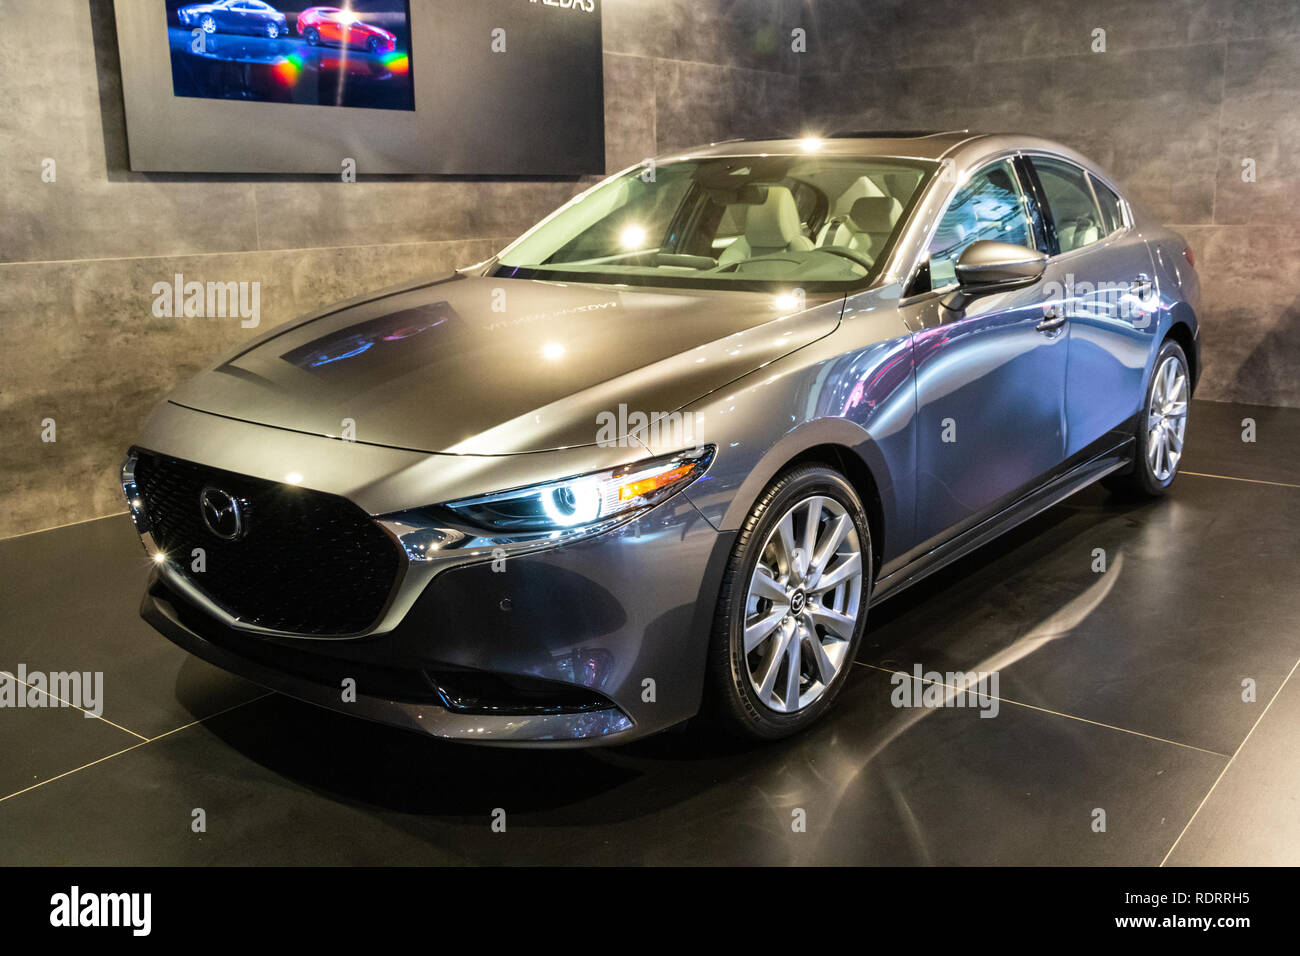 2019 Mazda3 Here S An Early Look At The Production Model Through